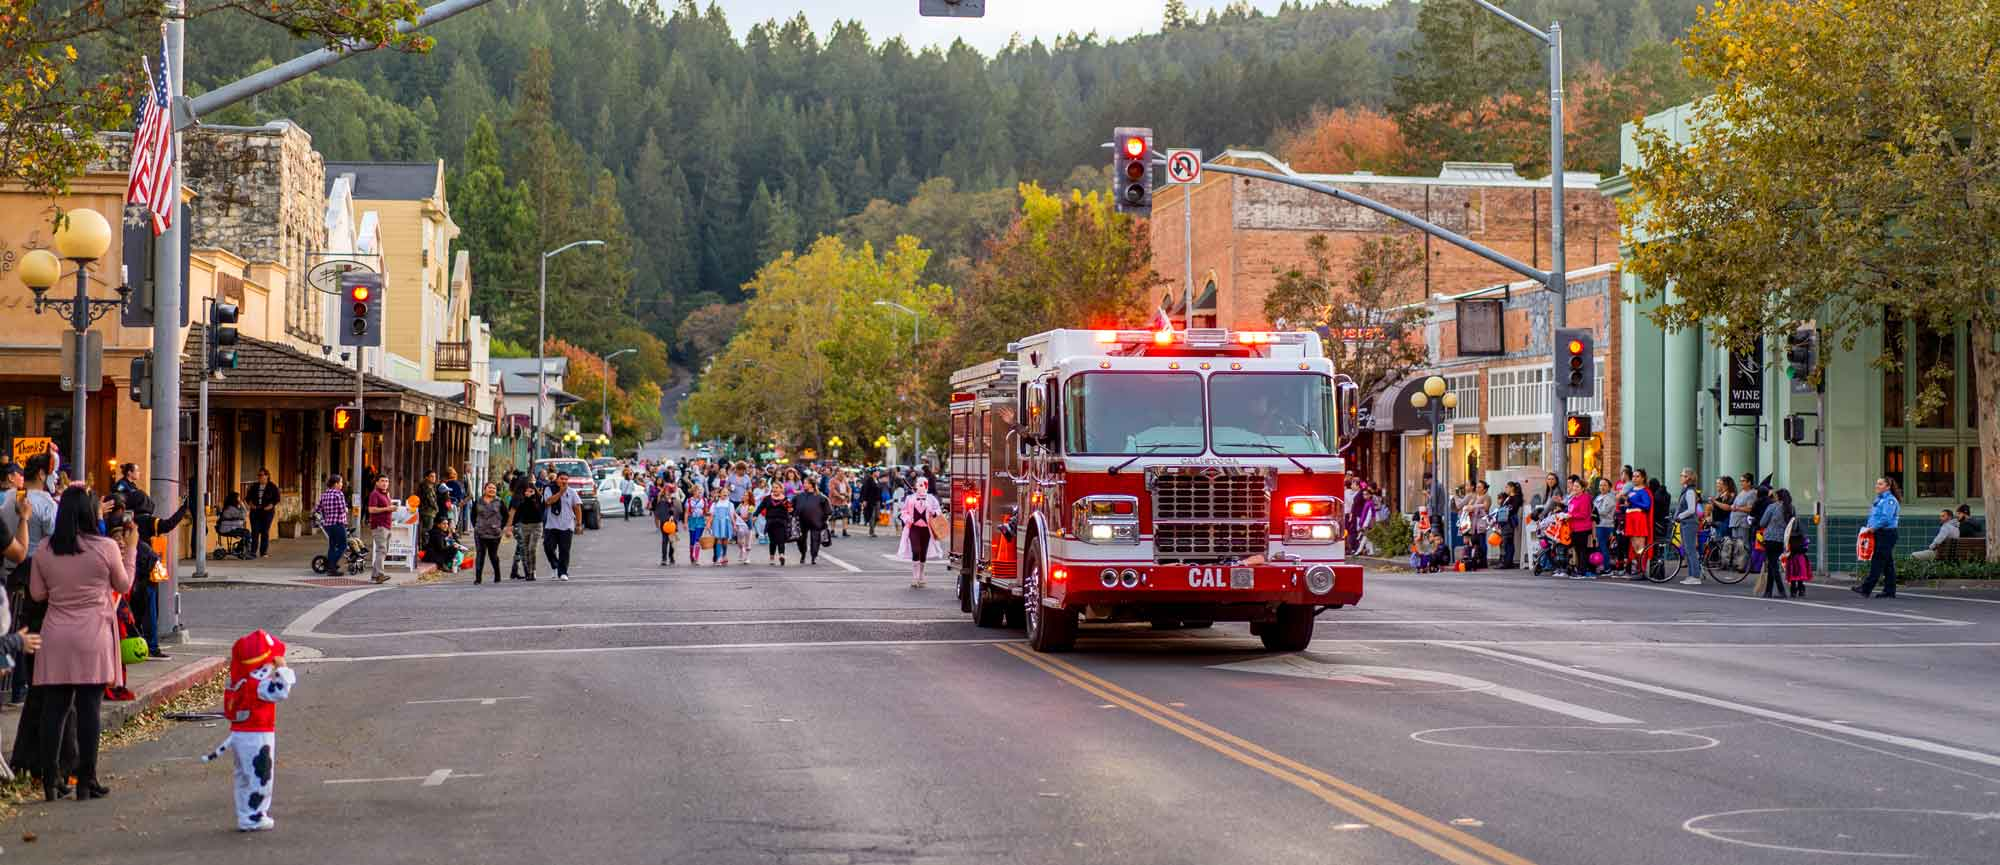 fire truck on Lincoln Ave in Calistoga